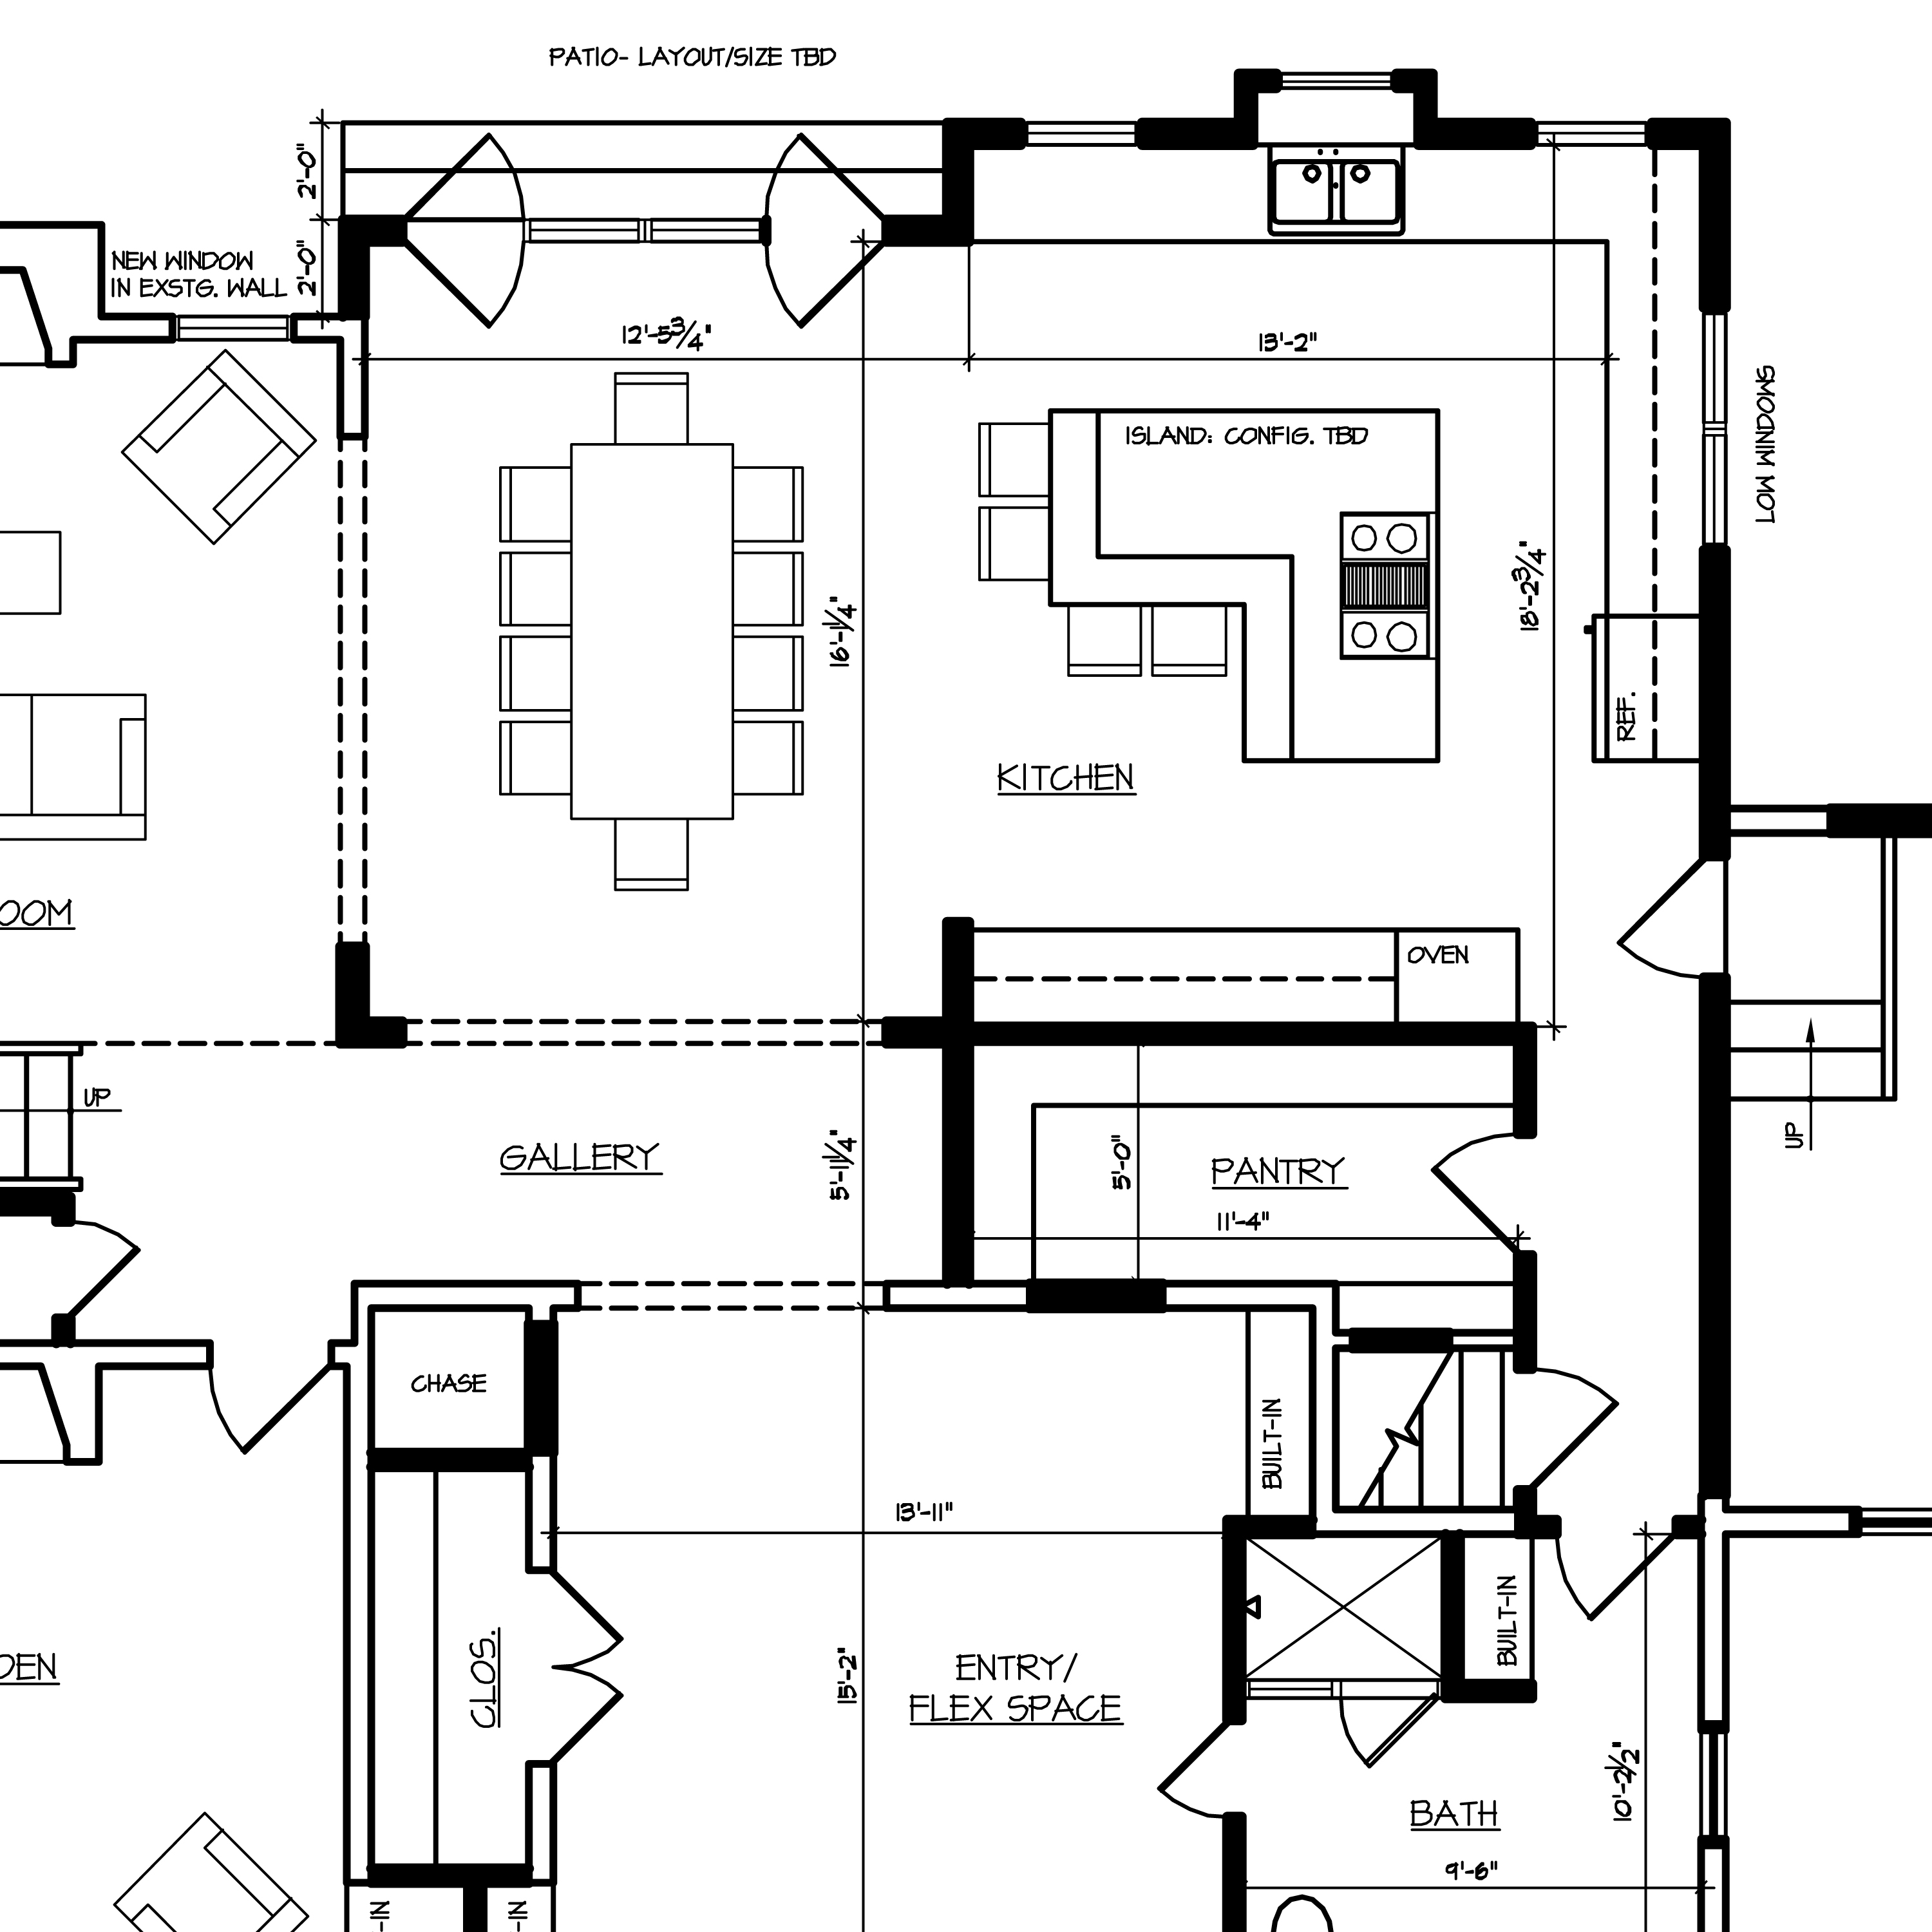 House Architectural Drawing at GetDrawings.com | Free for personal on house wiring diagram, house structure diagram, house plan diagram, house chart diagram, house block diagram, house line drawing, house system diagram, house installation diagram, house parallel circuit, house blueprint diagram, house component diagram, house battery diagram, house design diagram, house service diagram, house construction diagram, house overhead view, house exploded view, house parts diagram, house circuit breaker, house perspective drawing,